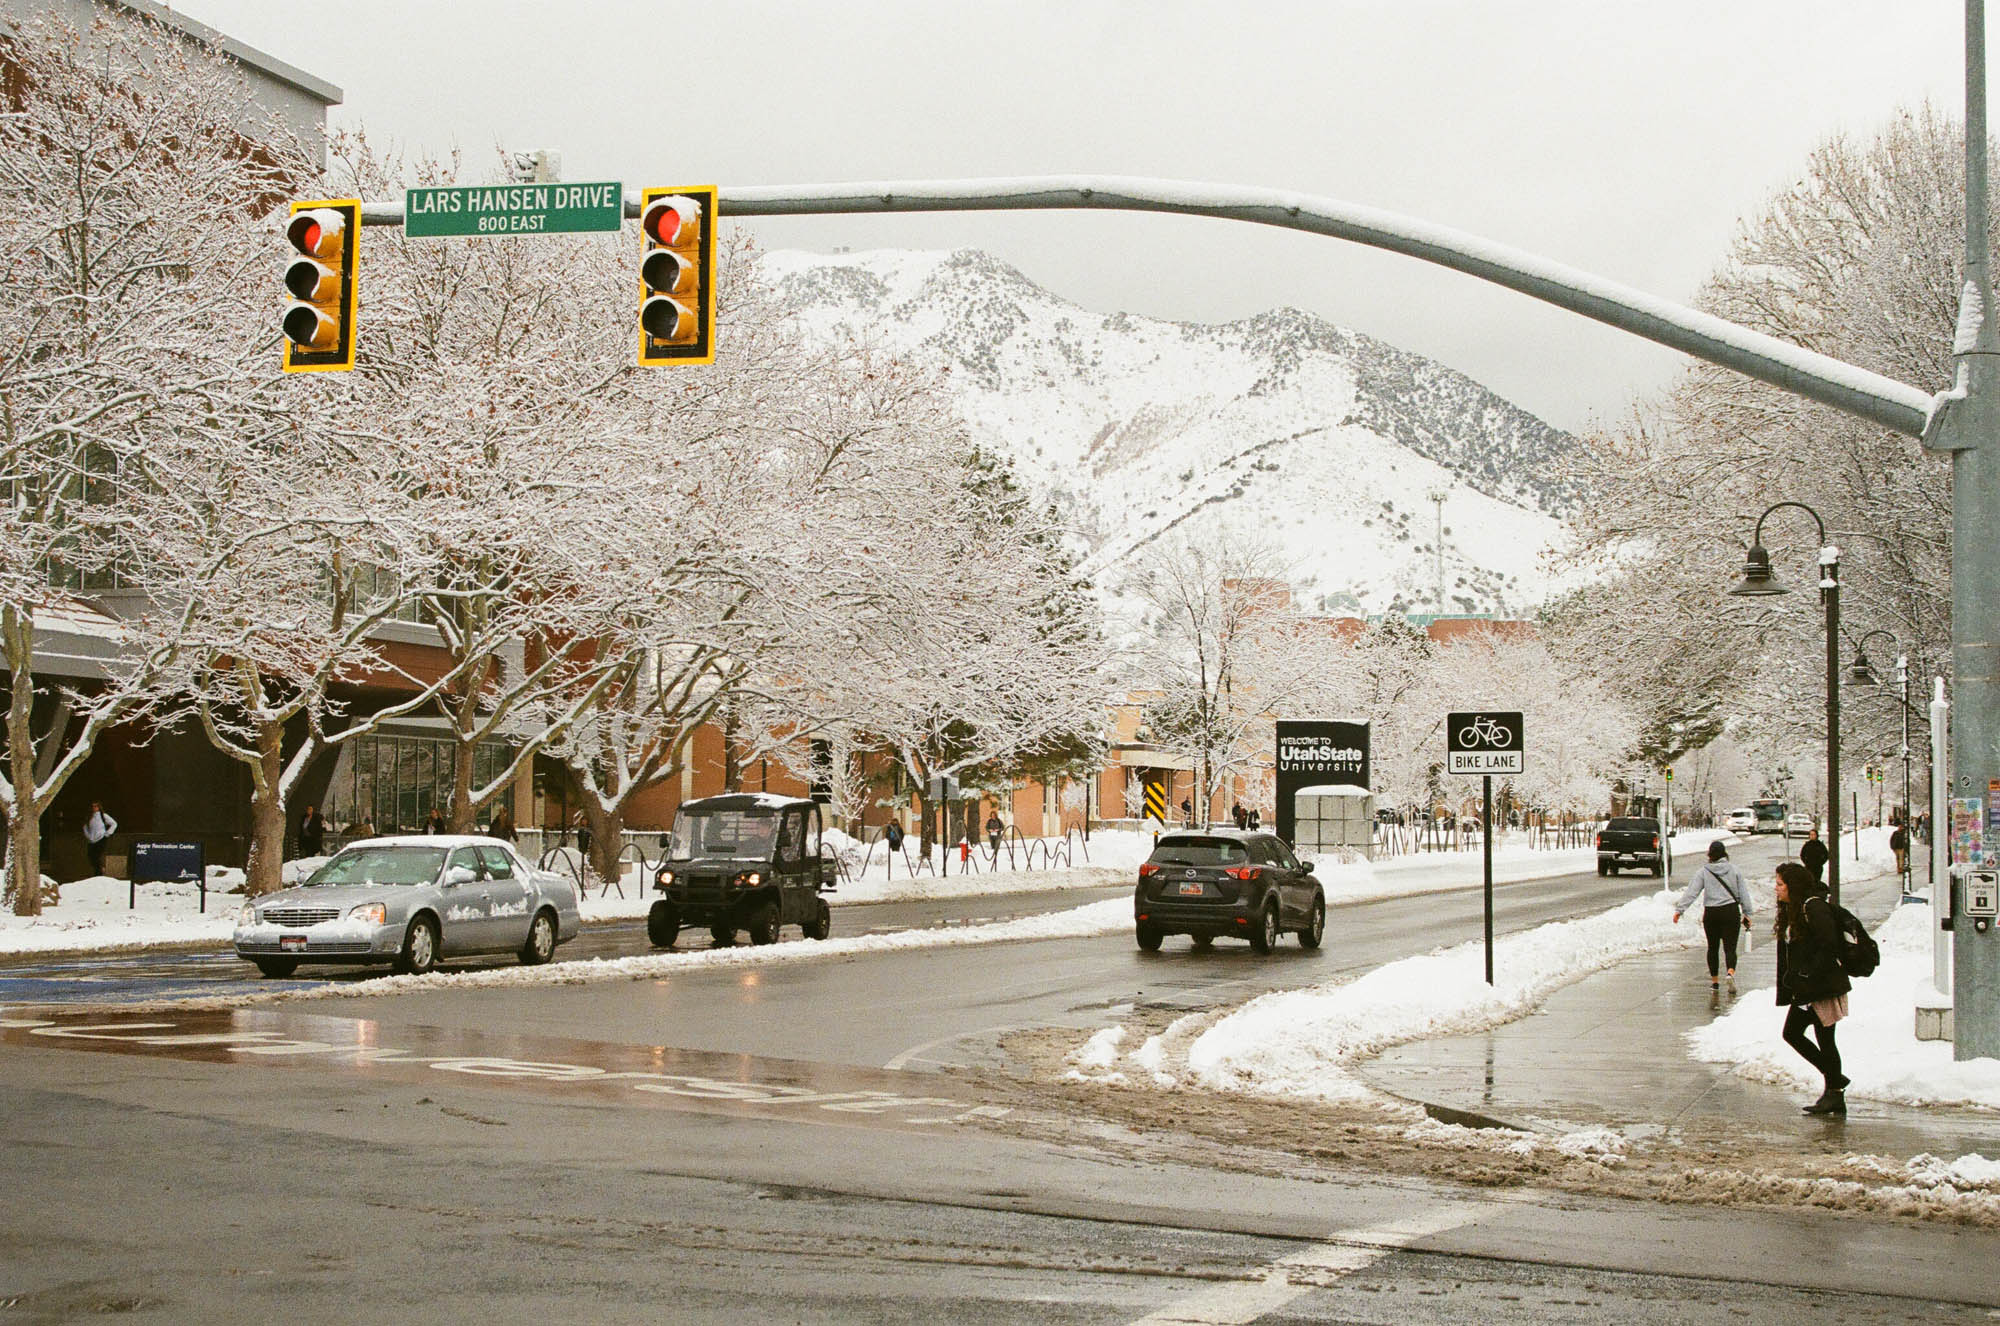 Utah State University campus on a snowy January 2020 afternoon